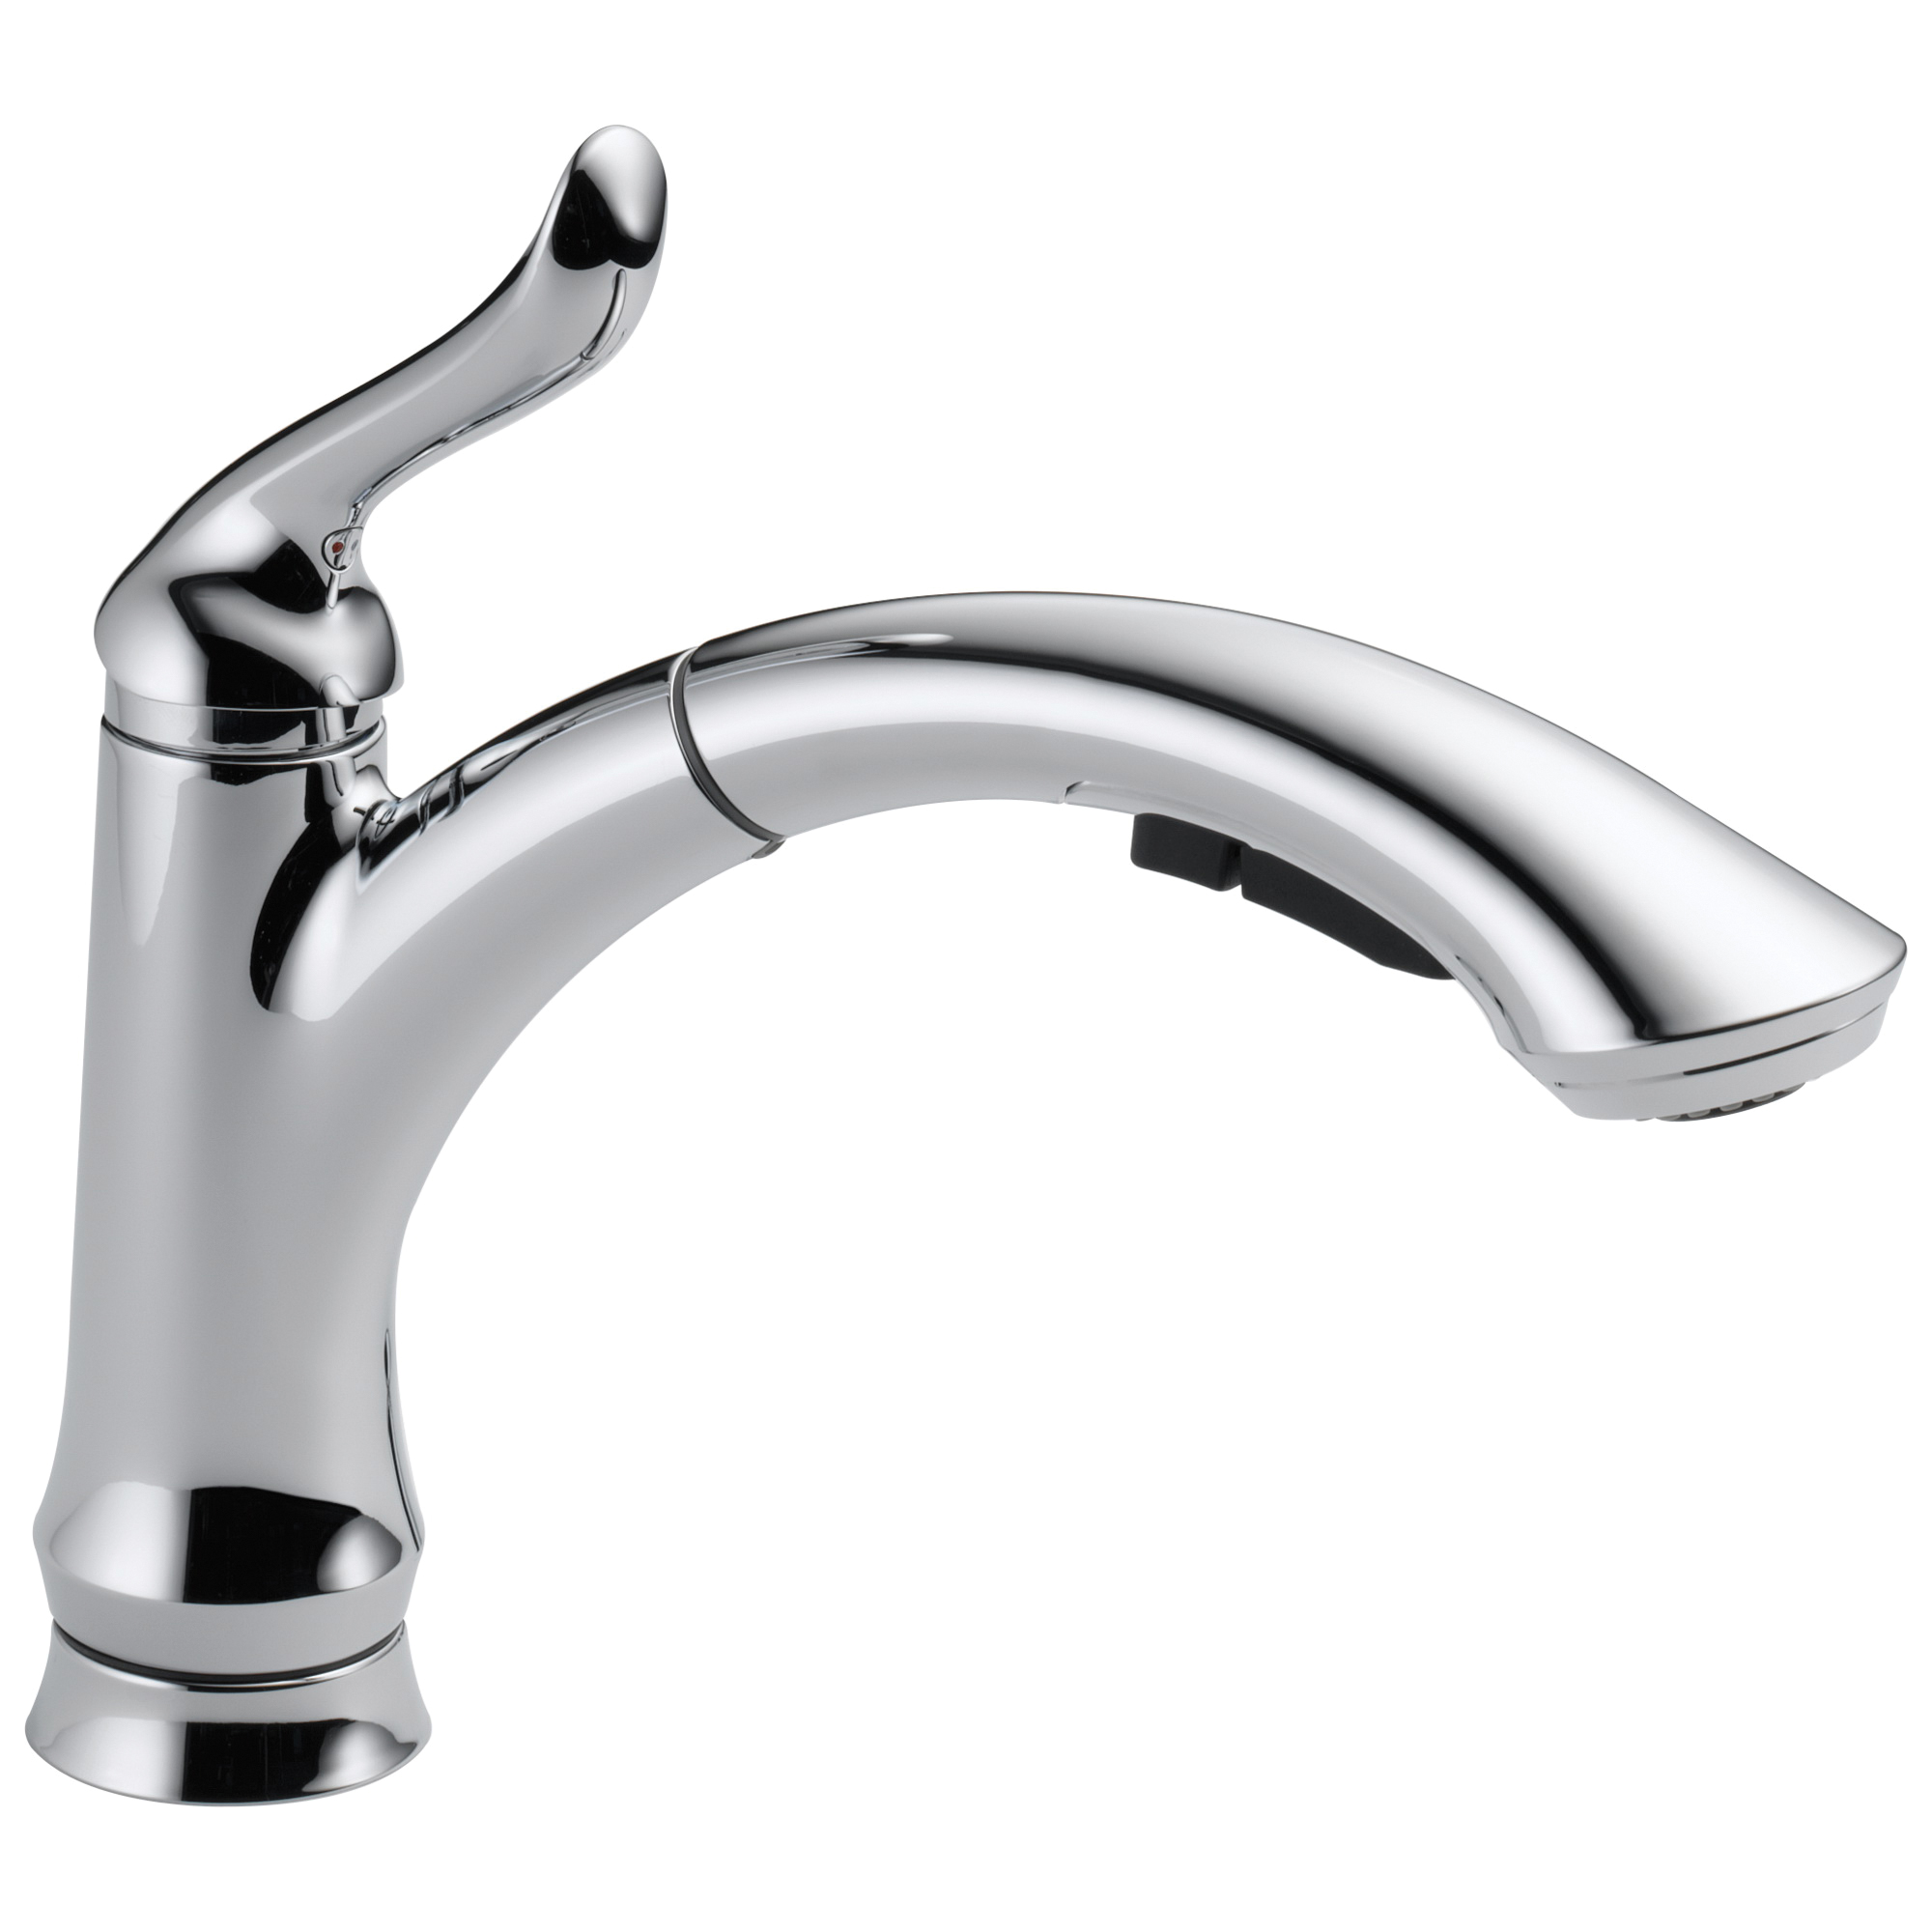 Delta 4353 Dst Linden Kitchen Faucet 1 5 Gpm 1 3 Faucet Holes Chrome Plated 1 Handles Domestic Commercial First Supply